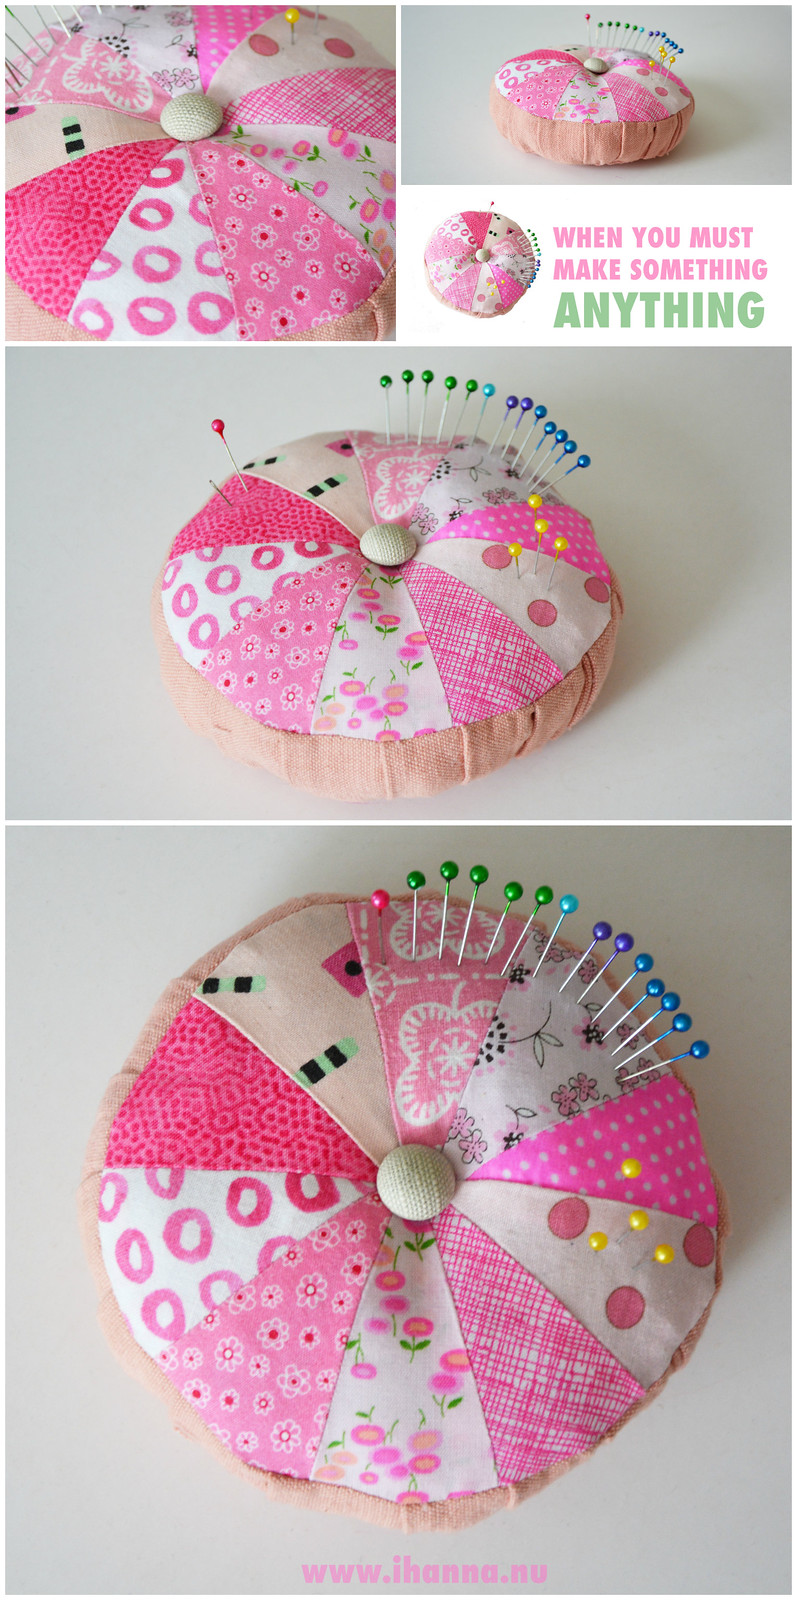 Make Something, Sew something, make anything - encouragement by iHanna + awesome scrappy pin cushion I made